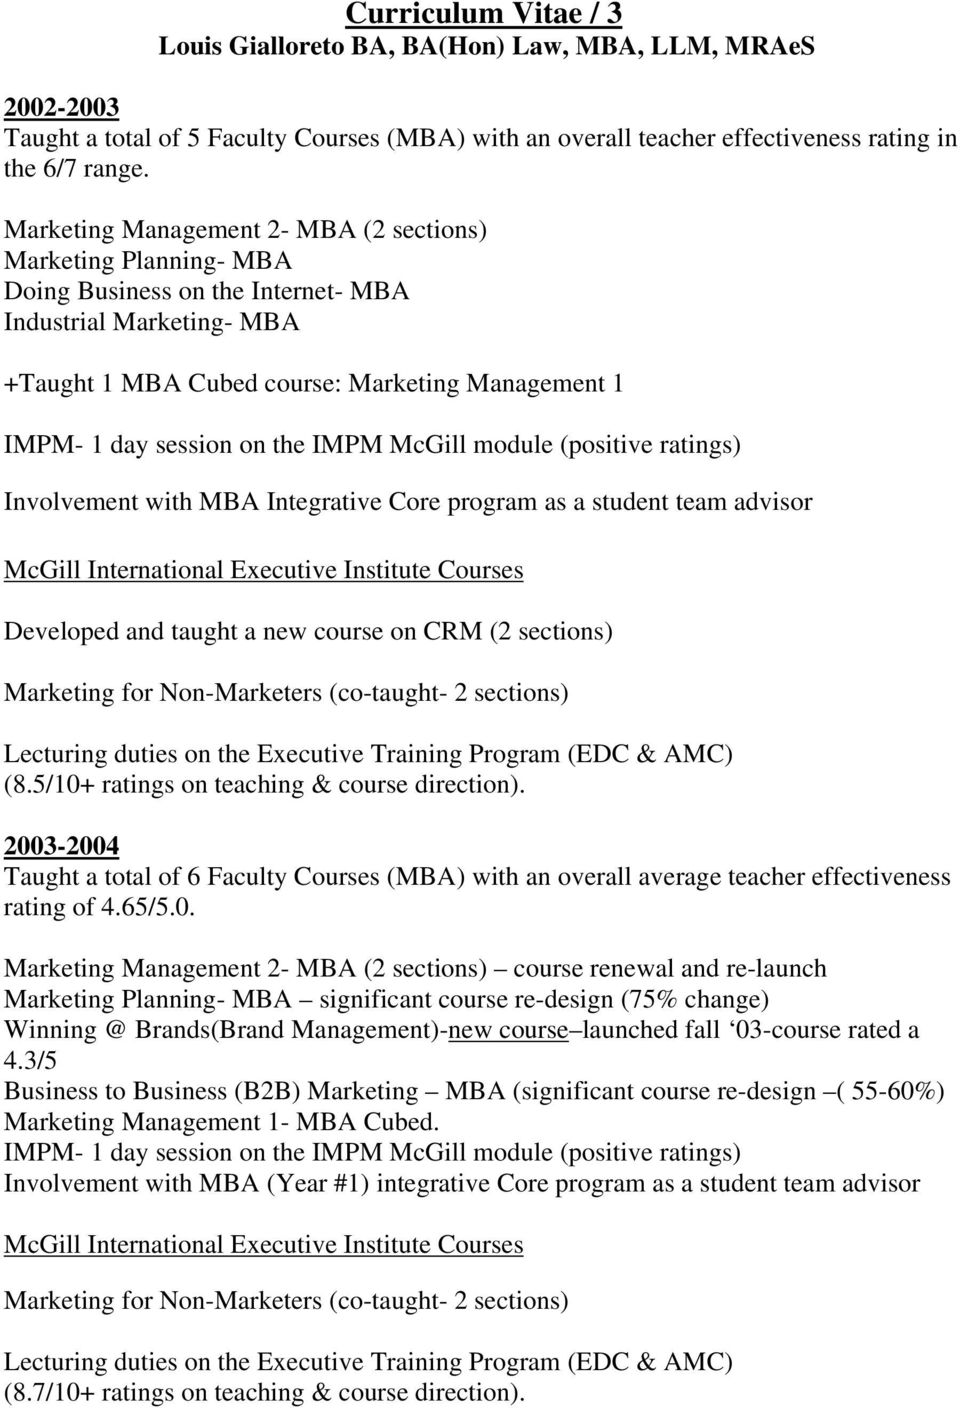 Integrative Core program as a student team advisor Developed and taught a new course on CRM (2 sections) Marketing for Non-Marketers (co-taught- 2 sections) (8.